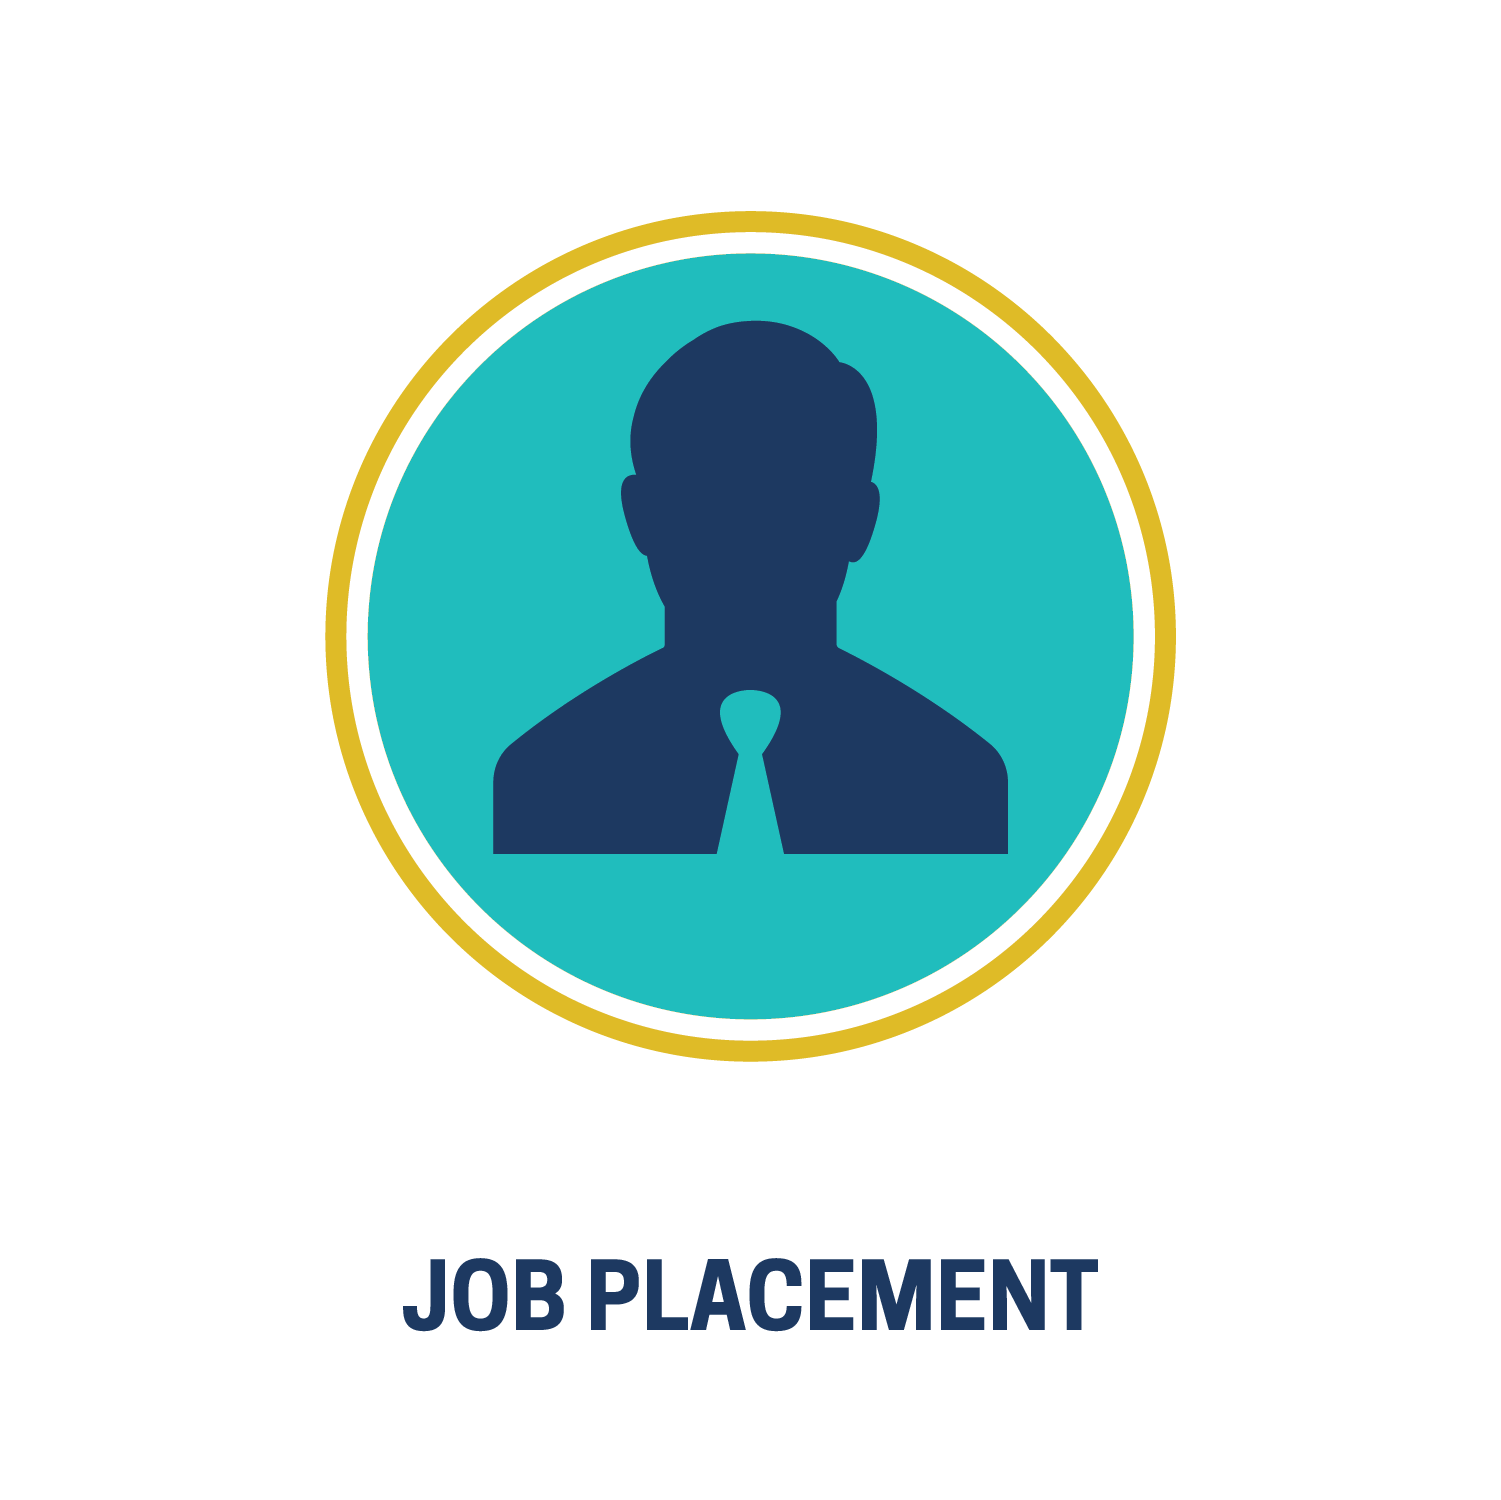 Icons_Job Placement.png